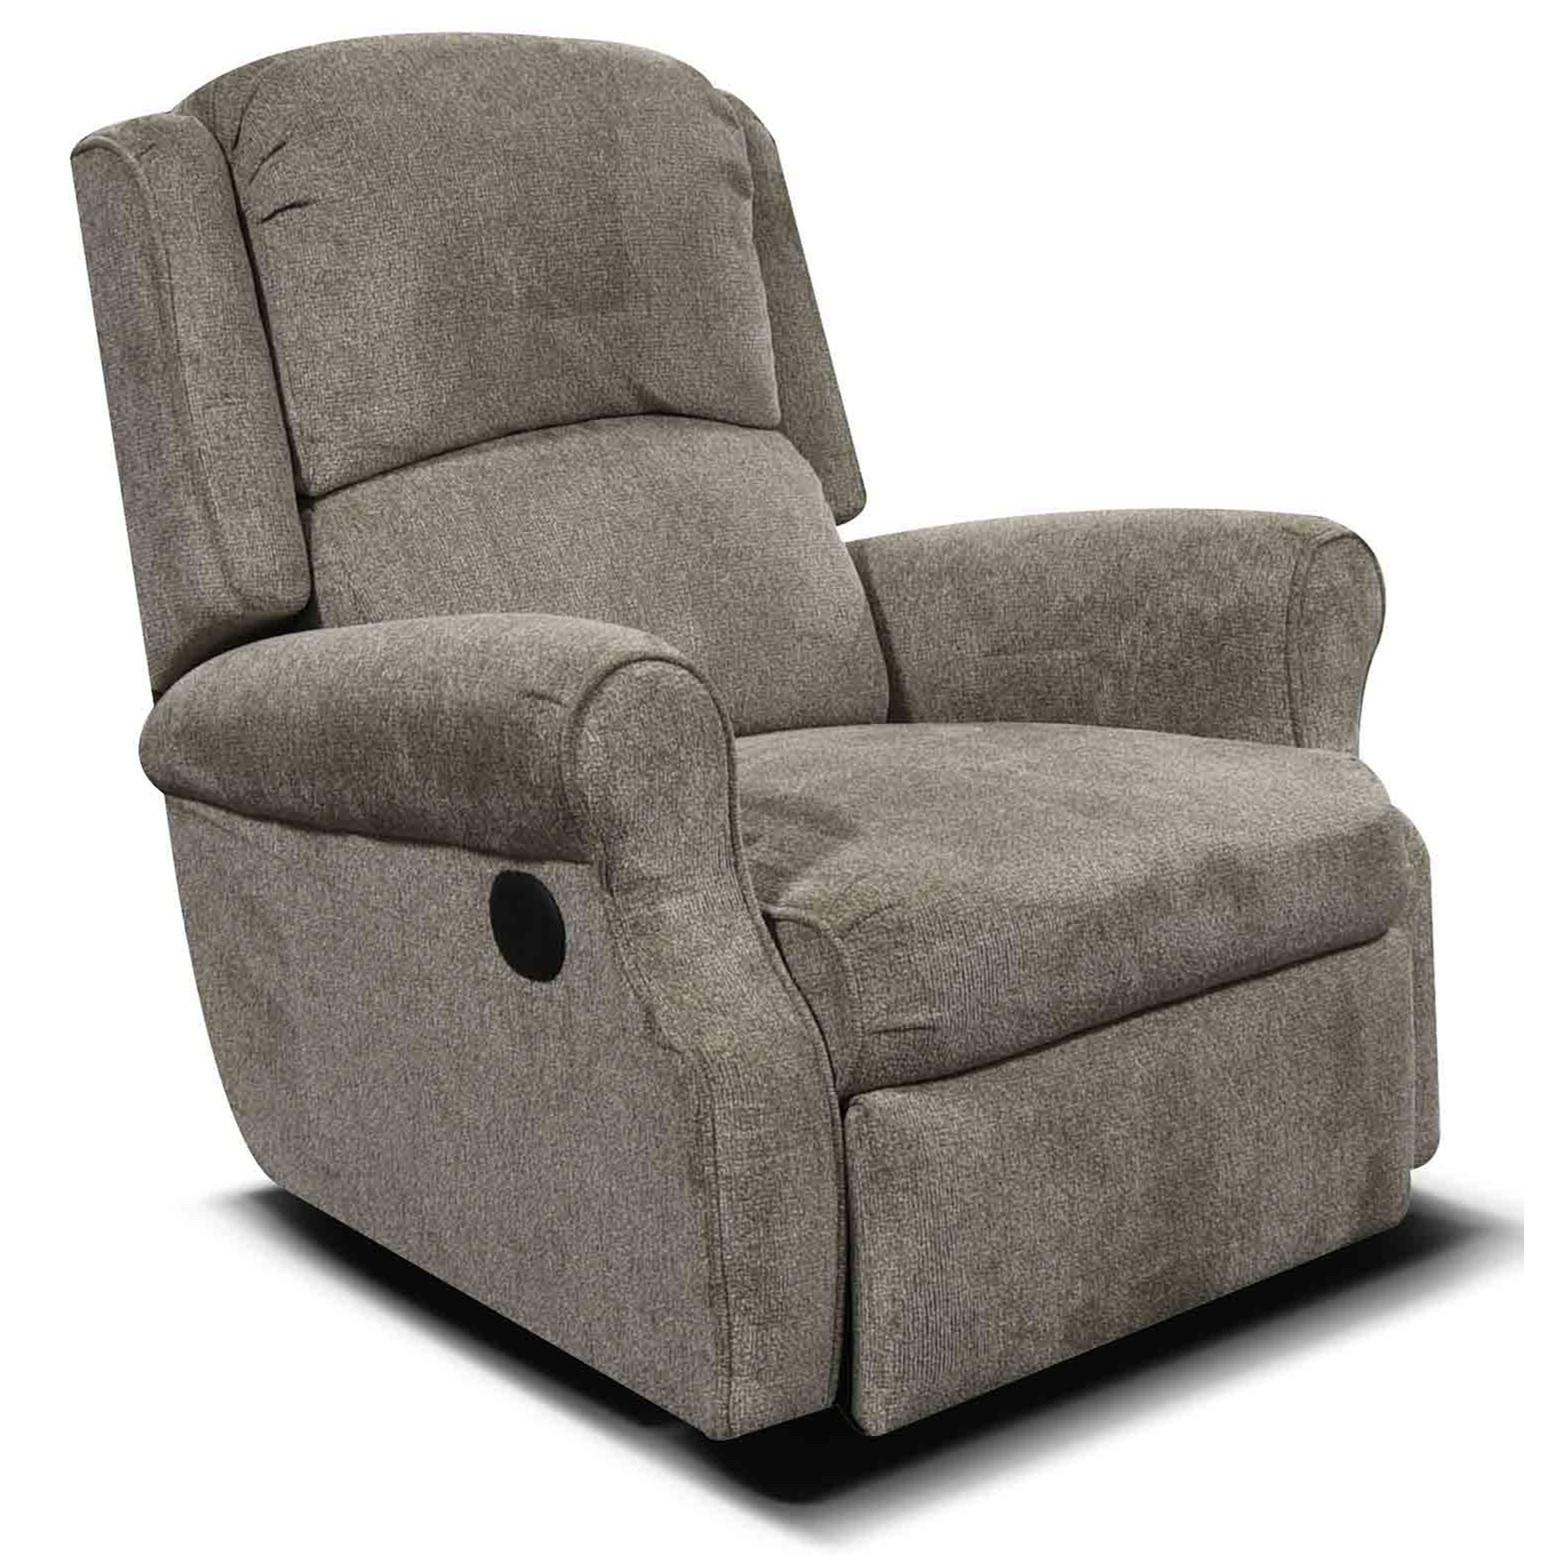 Marybeth Rocker Recliner by England at Van Hill Furniture